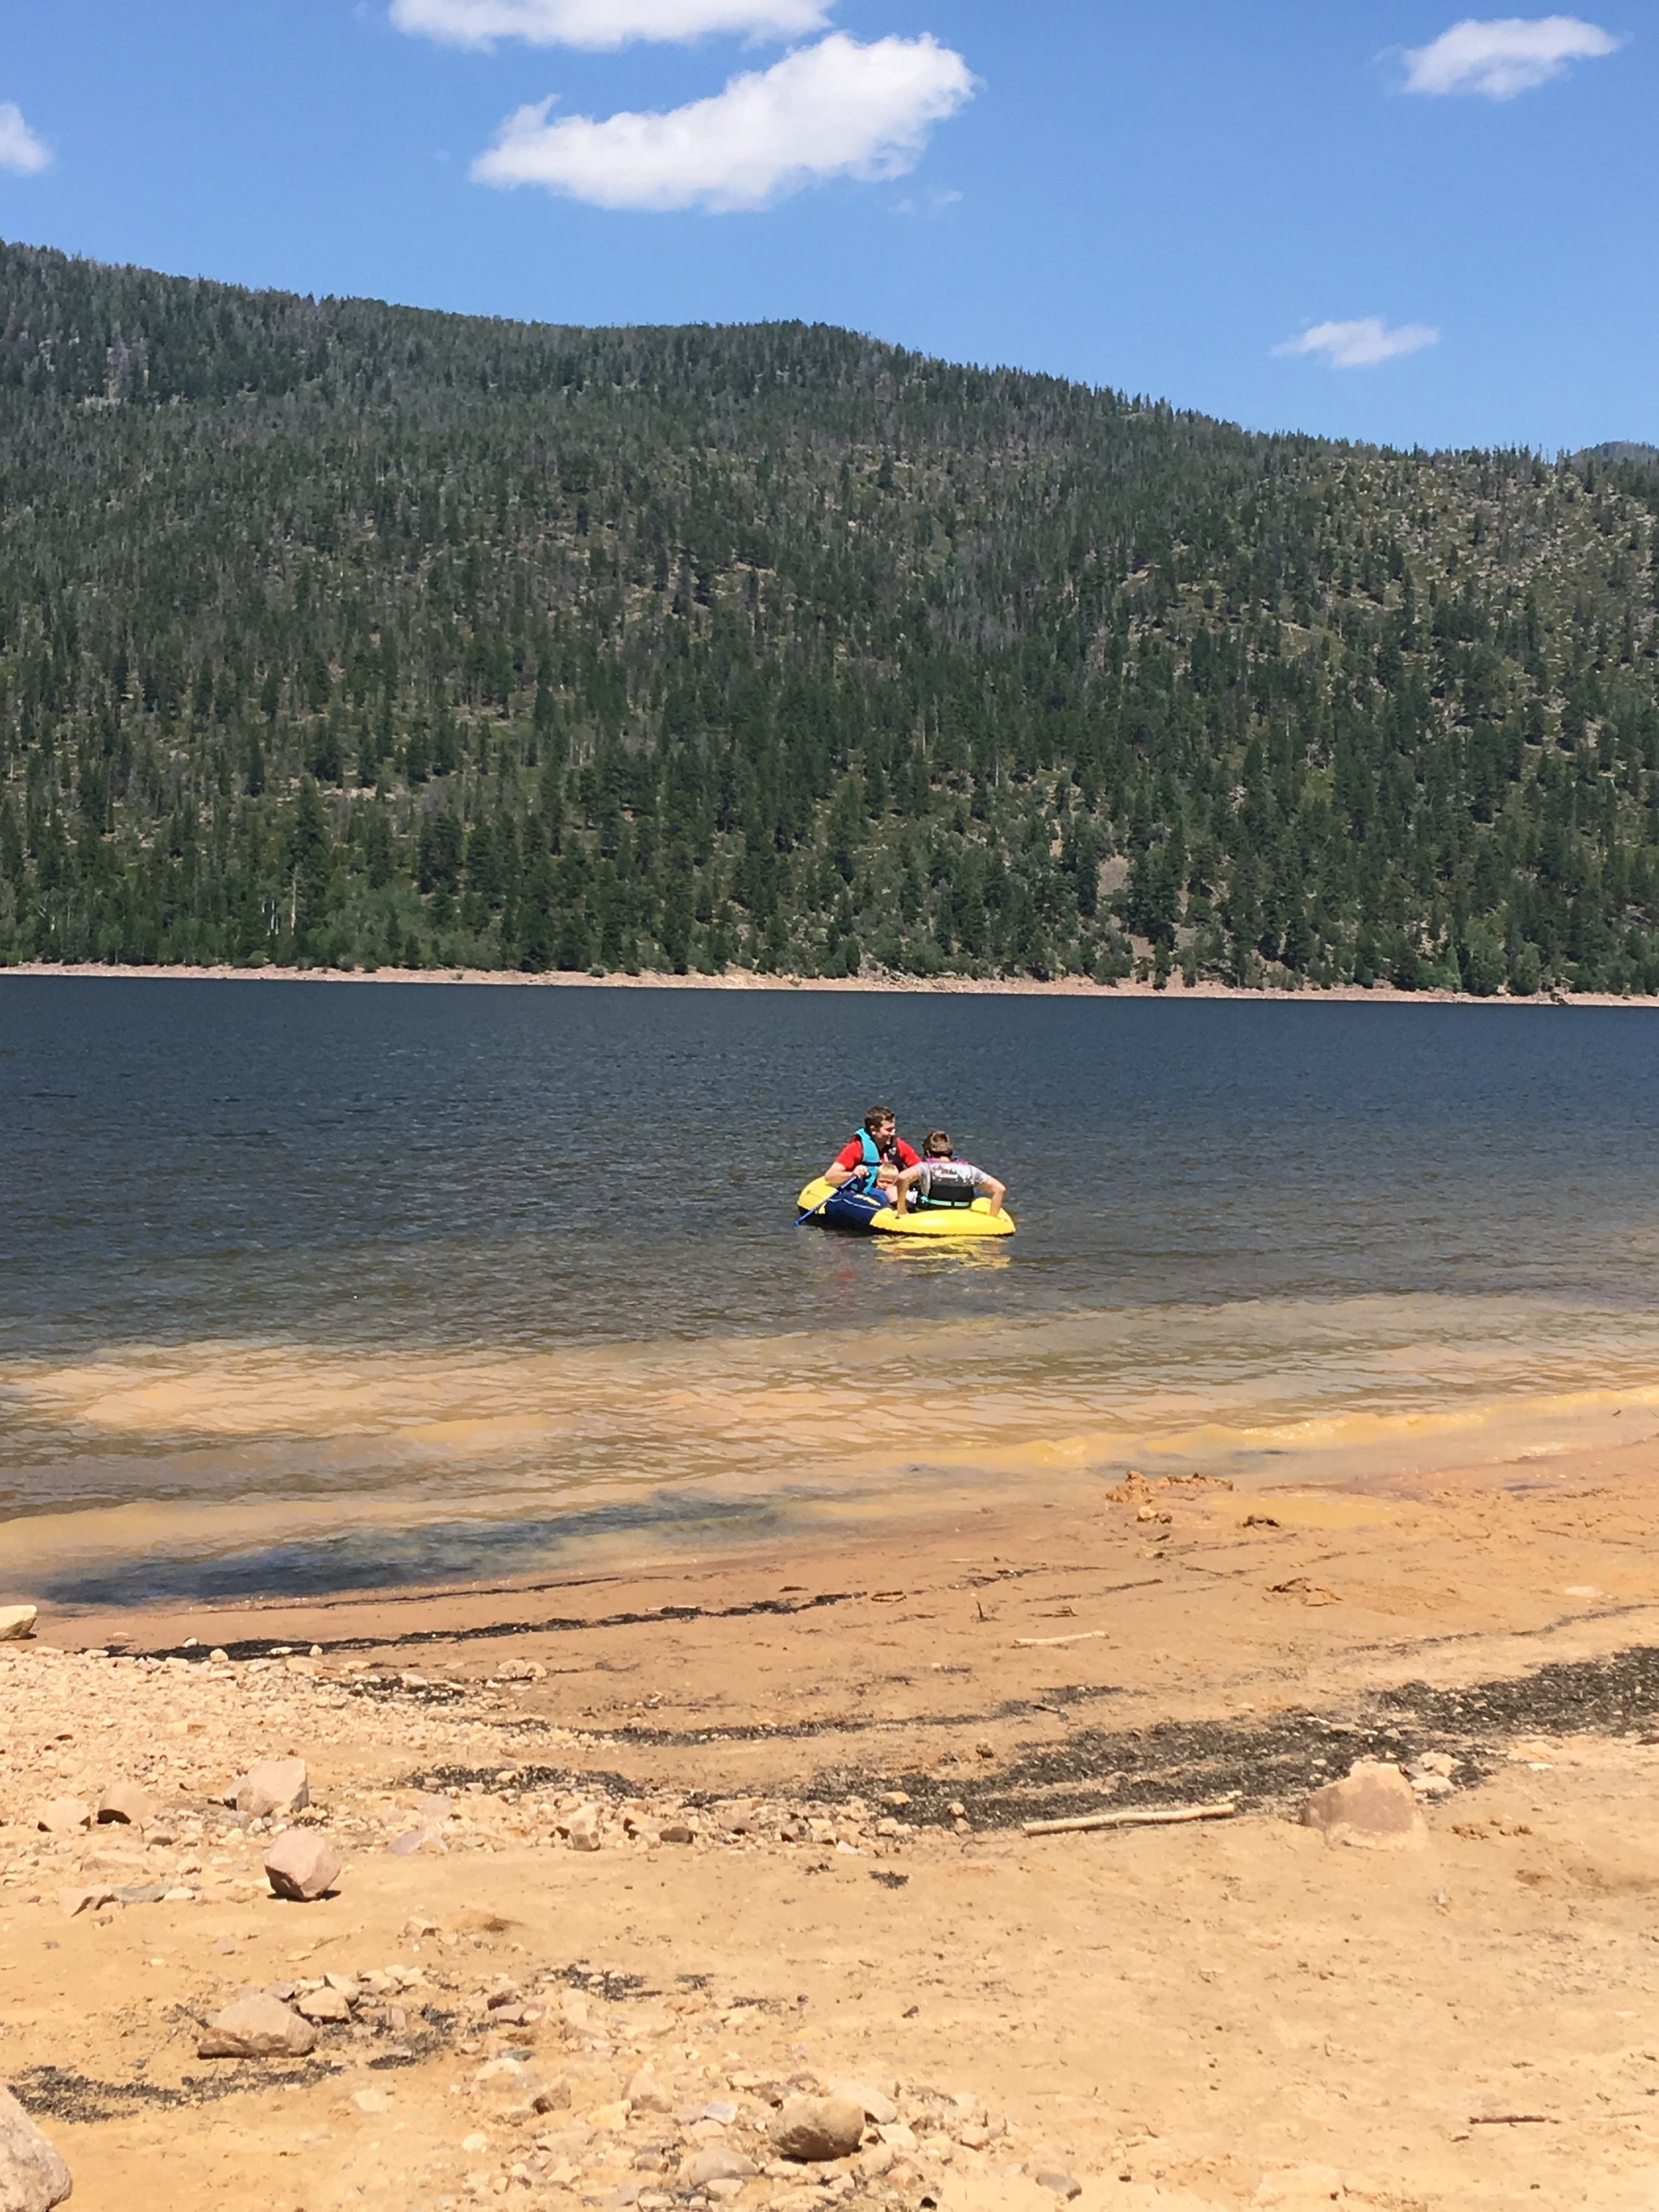 Taking out the raft - Hank wanted out after 30 seconds